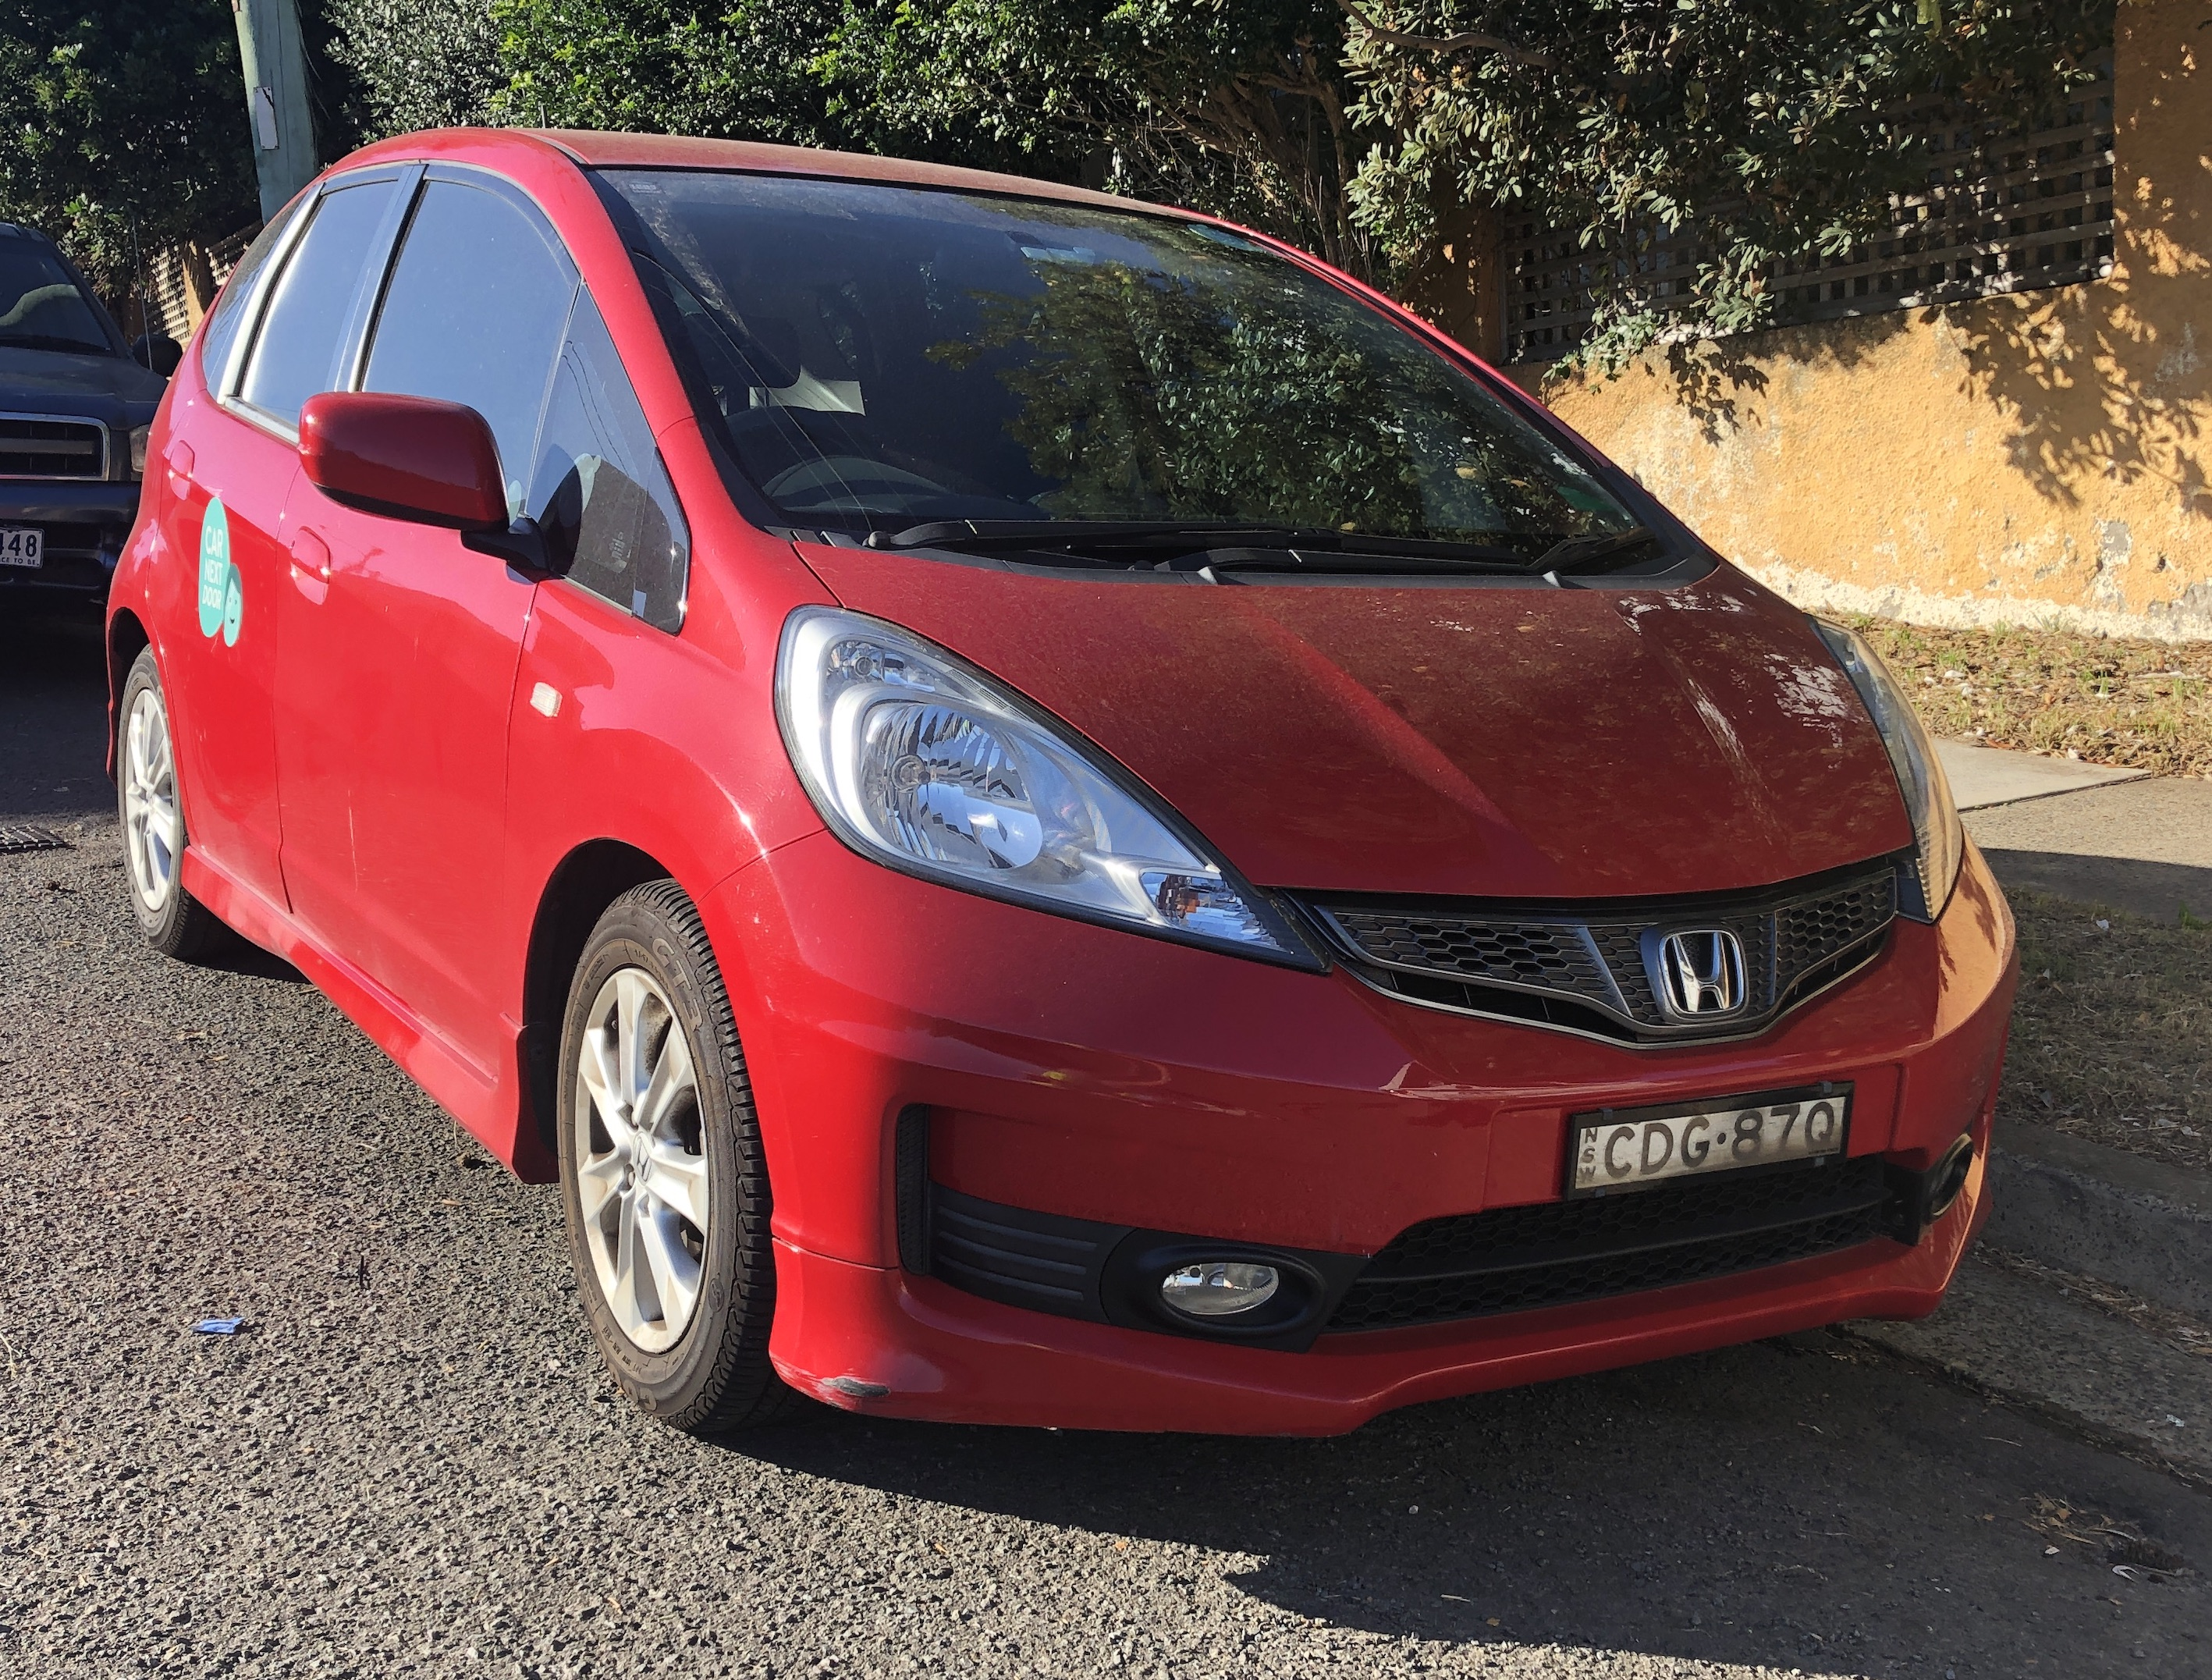 Picture of Josephine's 2011 Honda Jazz